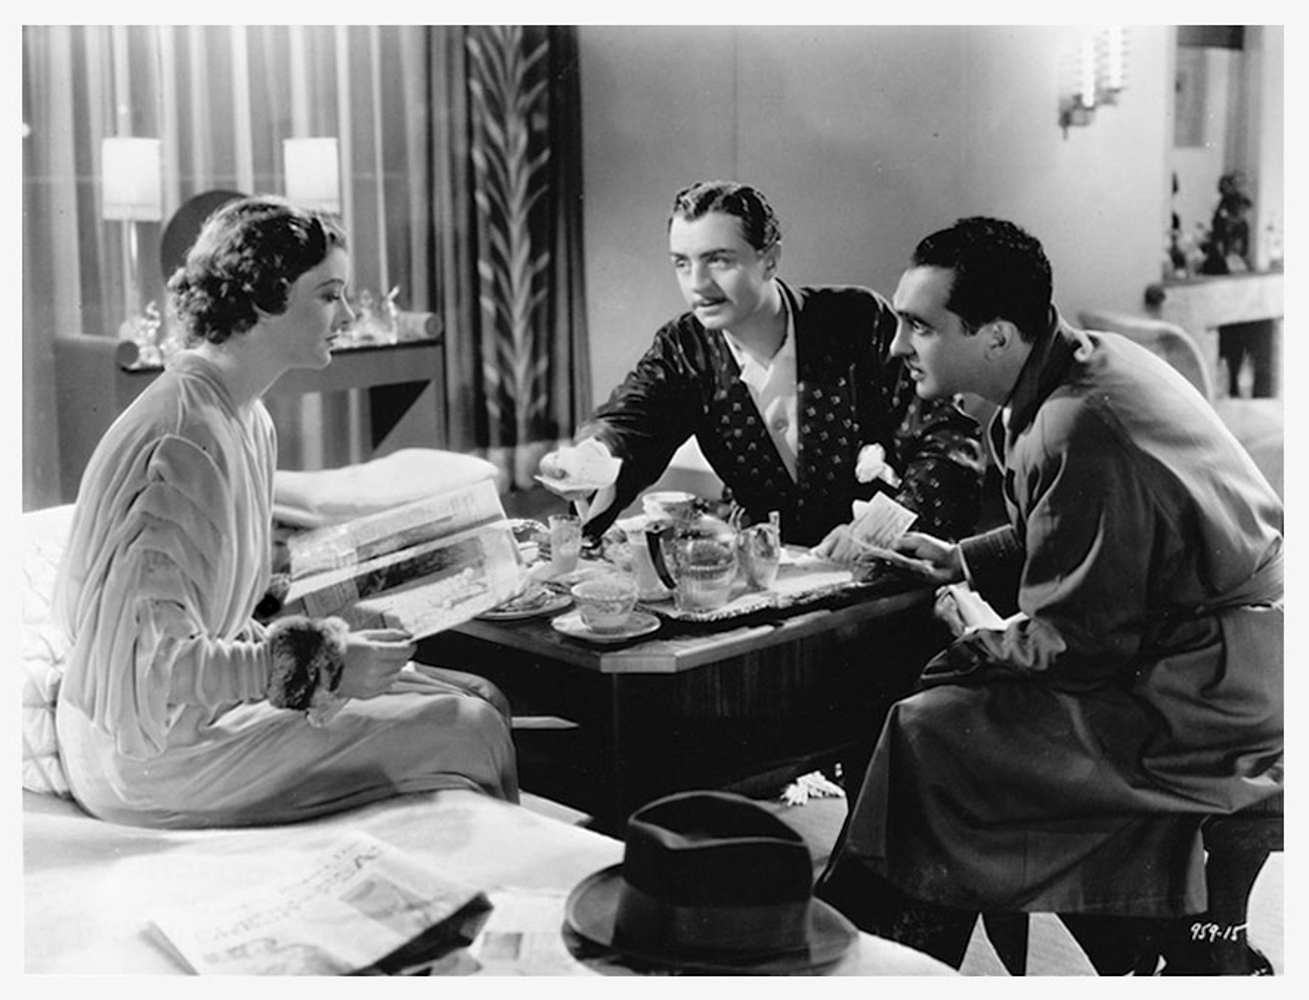 after the thin man 1936 scene still photo 959-15